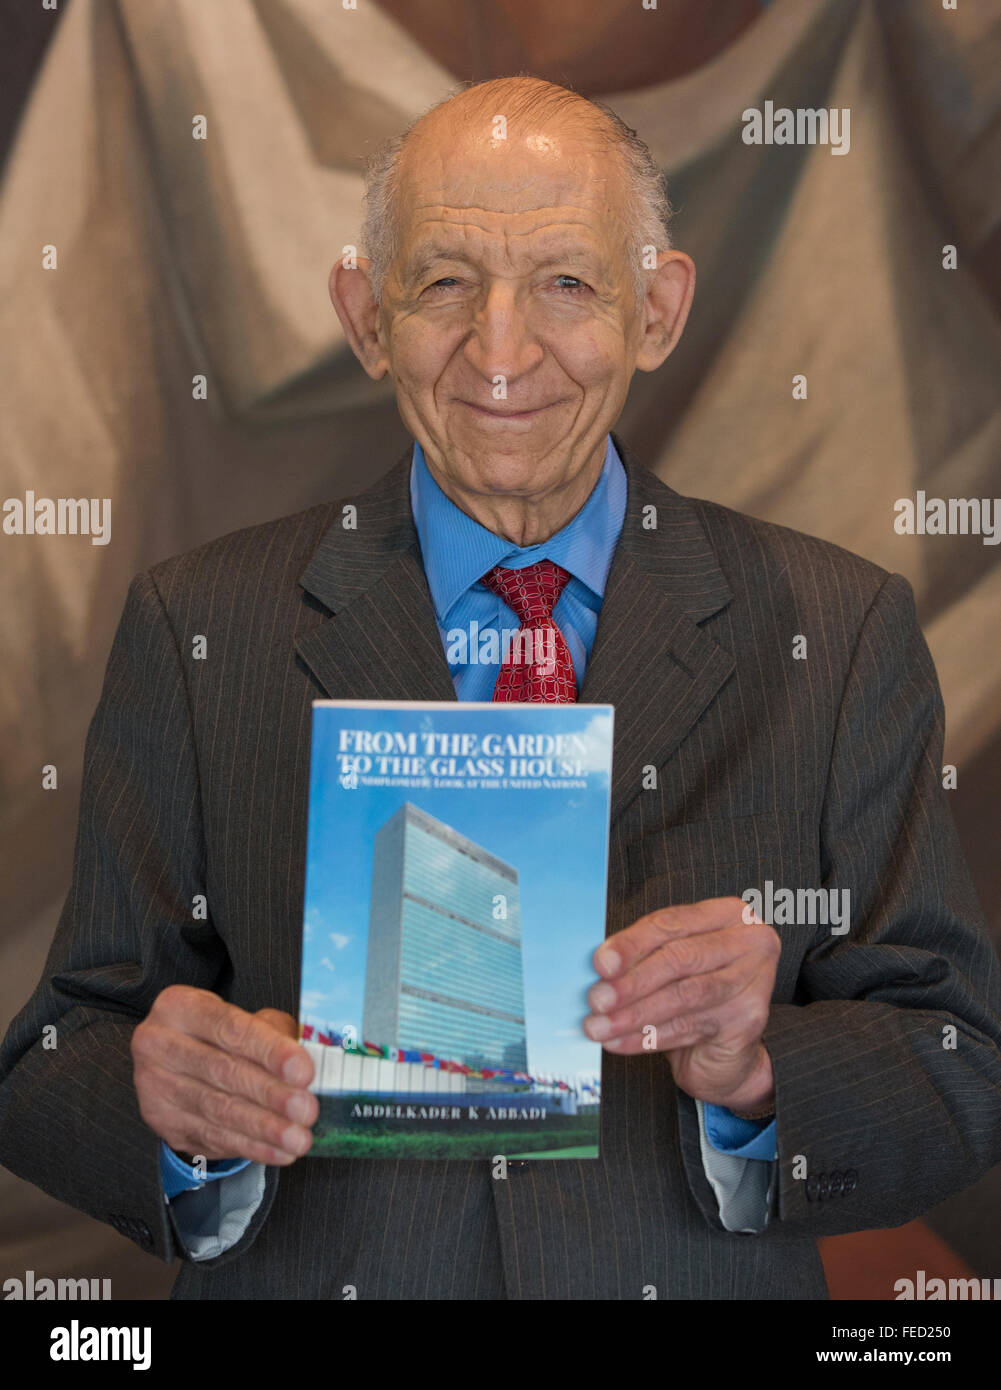 New York, United States. 04th Feb, 2016. New Book by UN Correspondent Abdelkader Abbadi - From the Garden to the - Stock Image